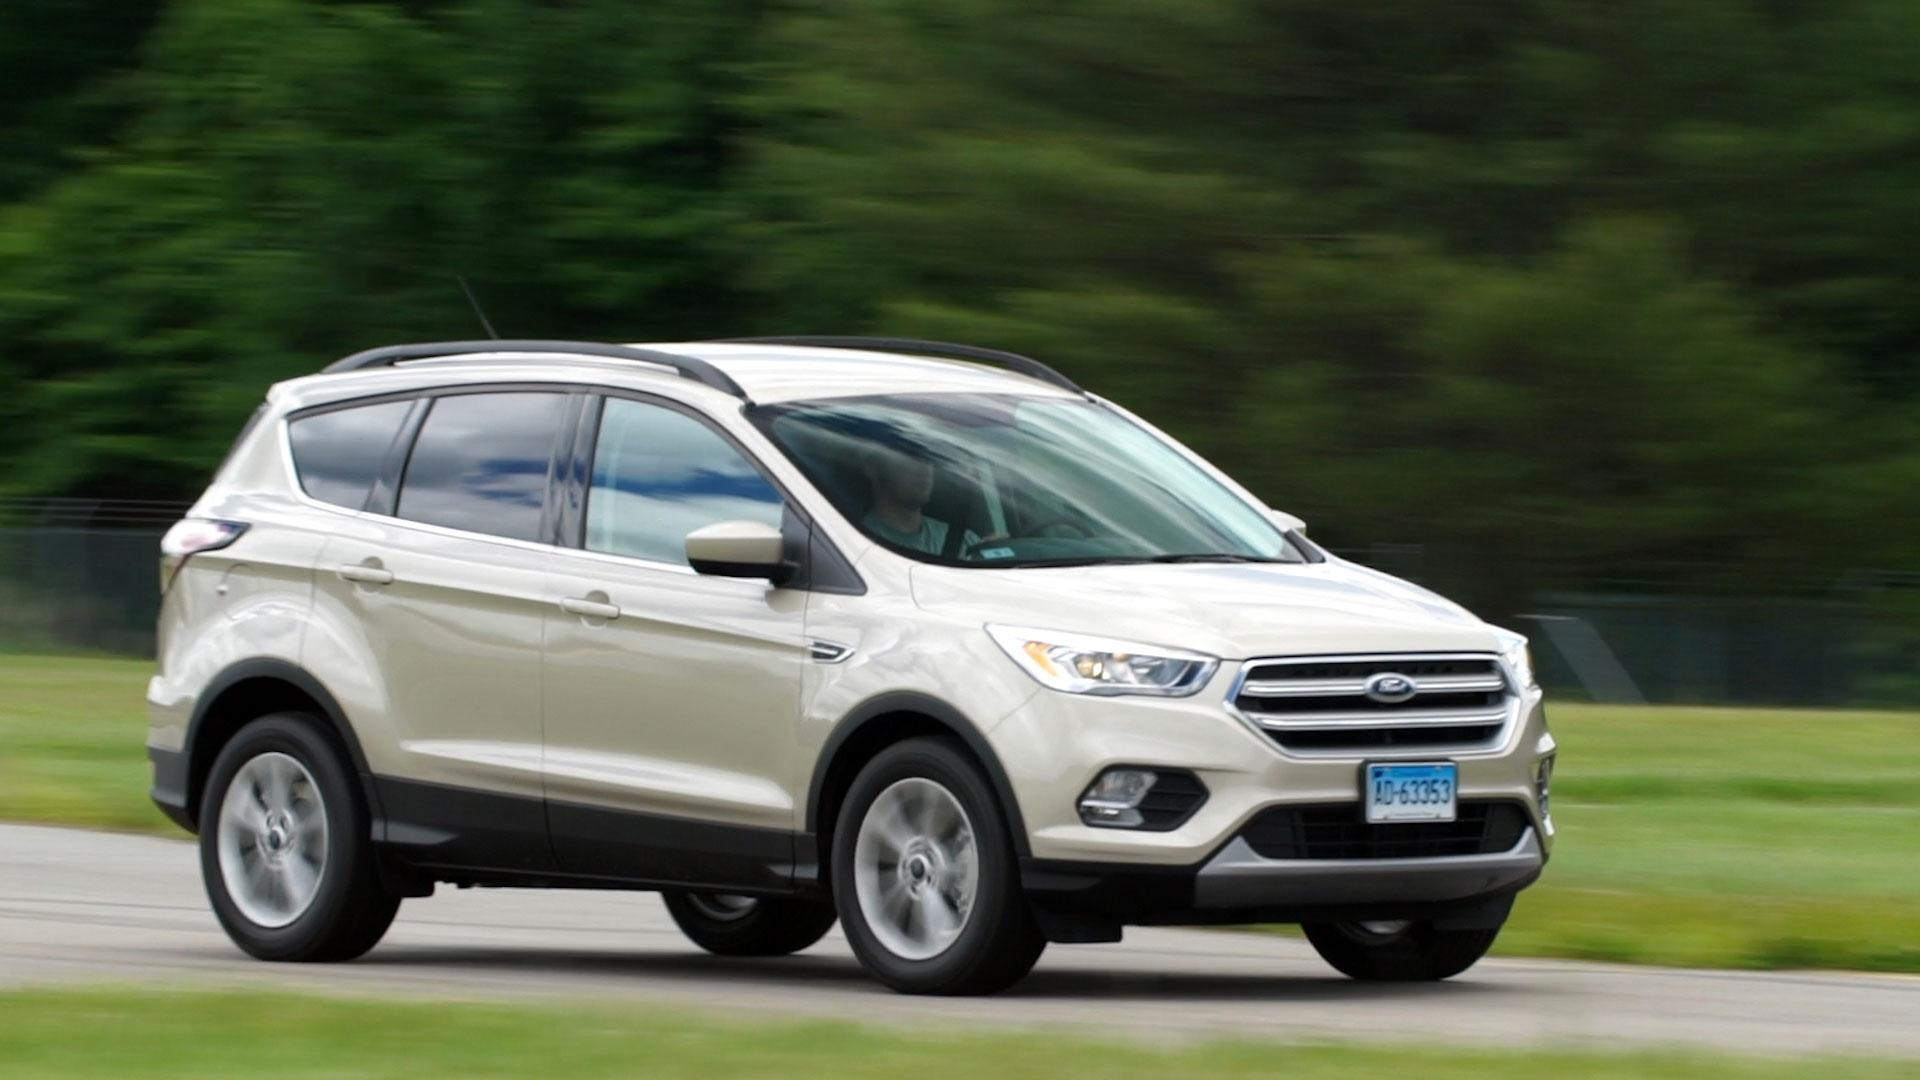 2017 ford escape maintains athletic appeal for a small suv. Black Bedroom Furniture Sets. Home Design Ideas